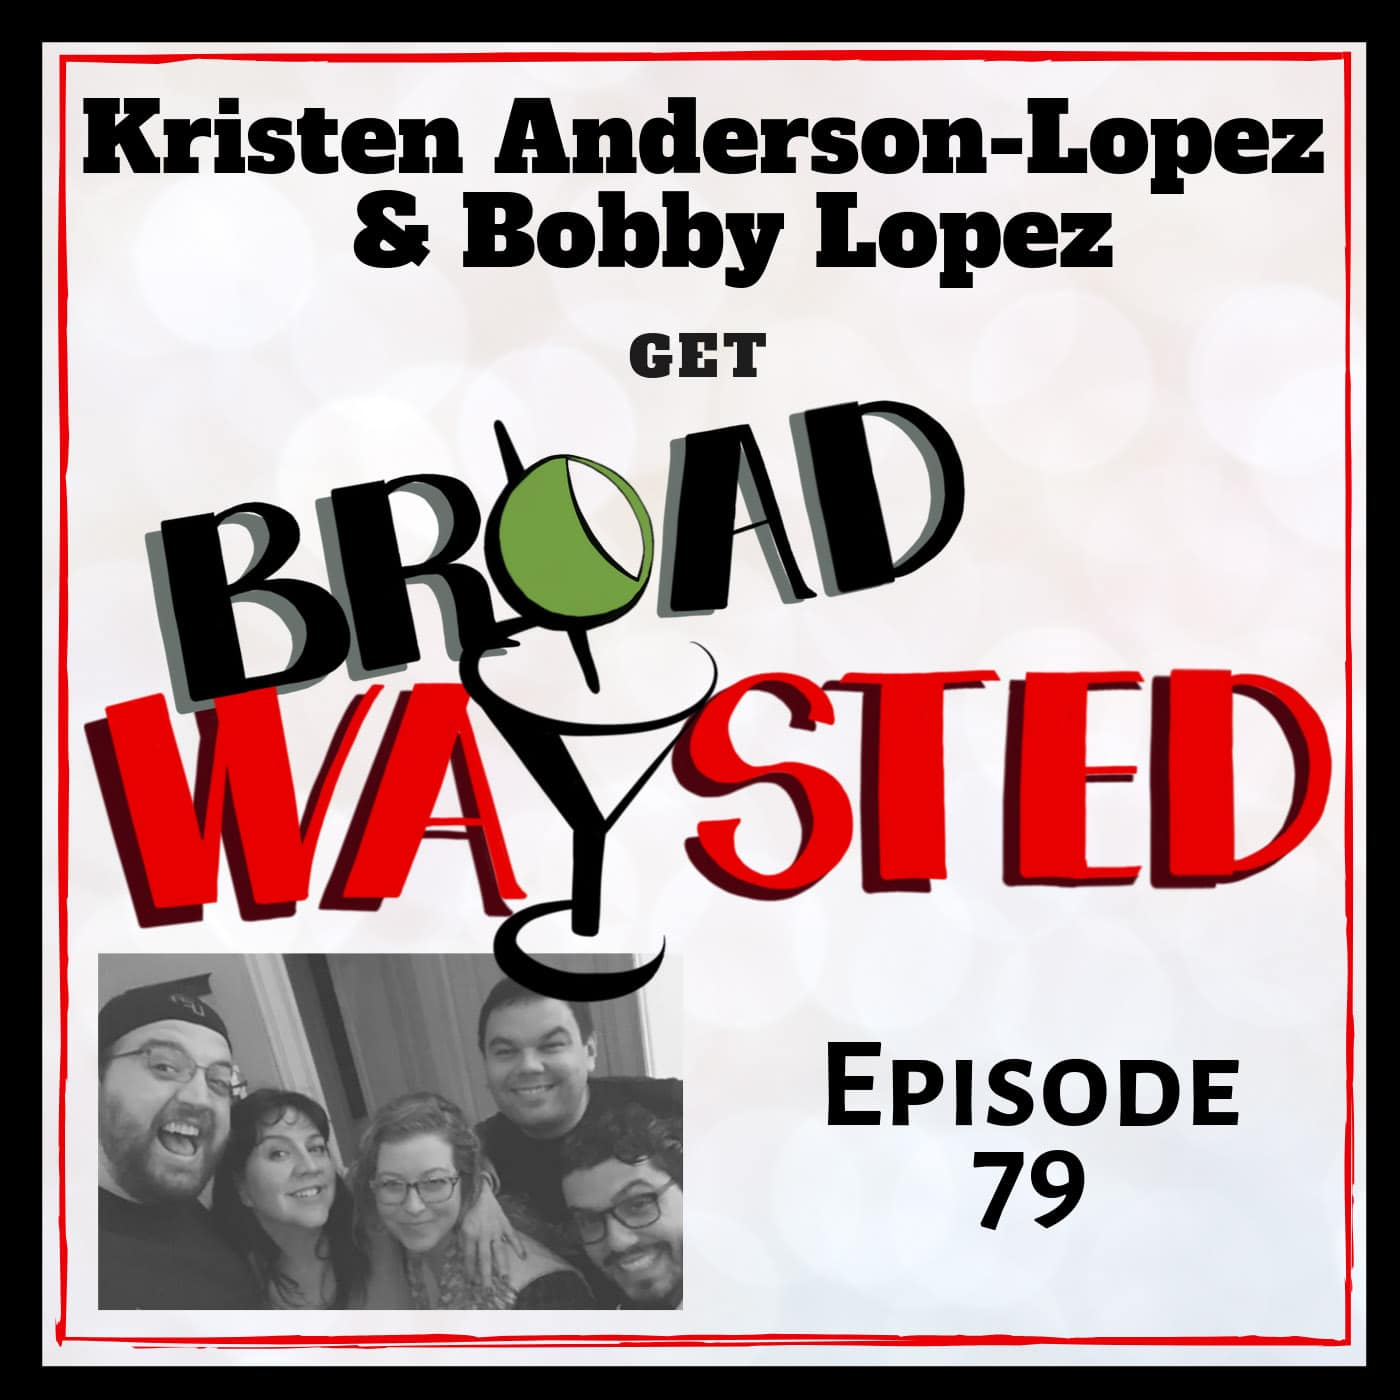 Broadwaysted Ep 79 Anderson Lopez